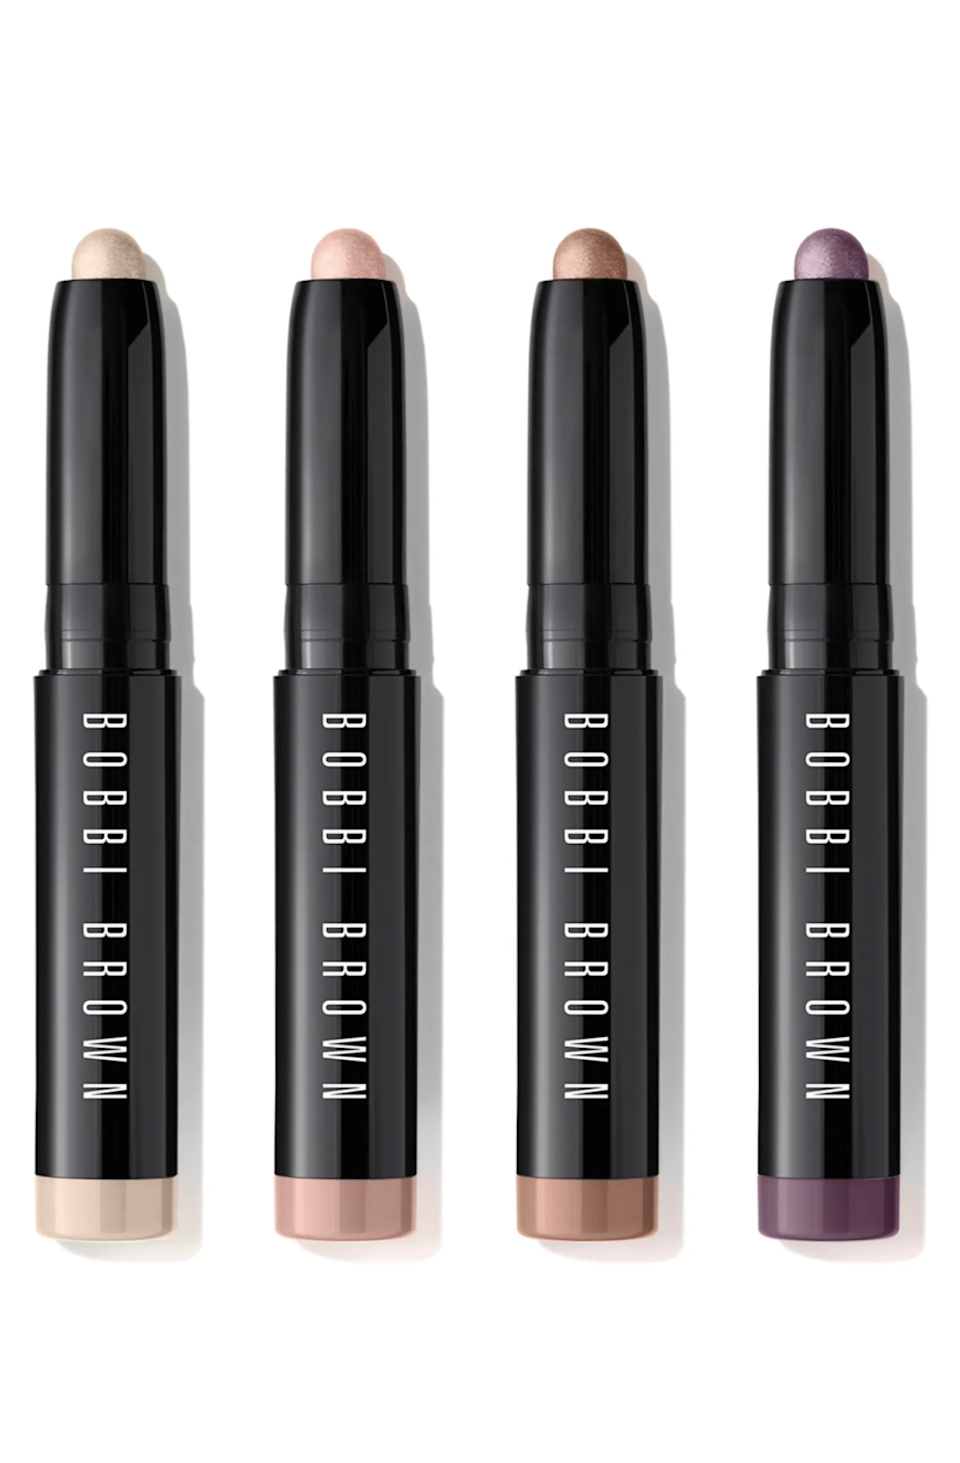 """<h2>Bobbi Brown Travel Size Long-Wear Cream Eyeshadow Stick Set</h2><br>Who needs brushes when it takes all of ten seconds to swipe and blend these creamy eyeshadow sticks? Use it as a liner, smoke it out for more of a shadow look, or use it as a creamy base. <br><br><strong>Bobbi Brown</strong> Travel Size Long-Wear Cream Eyeshadow Stick Set, $, available at <a href=""""https://go.skimresources.com/?id=30283X879131&url=https%3A%2F%2Fwww.nordstrom.com%2Fs%2Fbobbi-brown-travel-size-long-wear-cream-eyeshadow-stick-set-usd-70-value%2F6418298%3F"""" rel=""""nofollow noopener"""" target=""""_blank"""" data-ylk=""""slk:Nordstrom"""" class=""""link rapid-noclick-resp"""">Nordstrom</a>"""